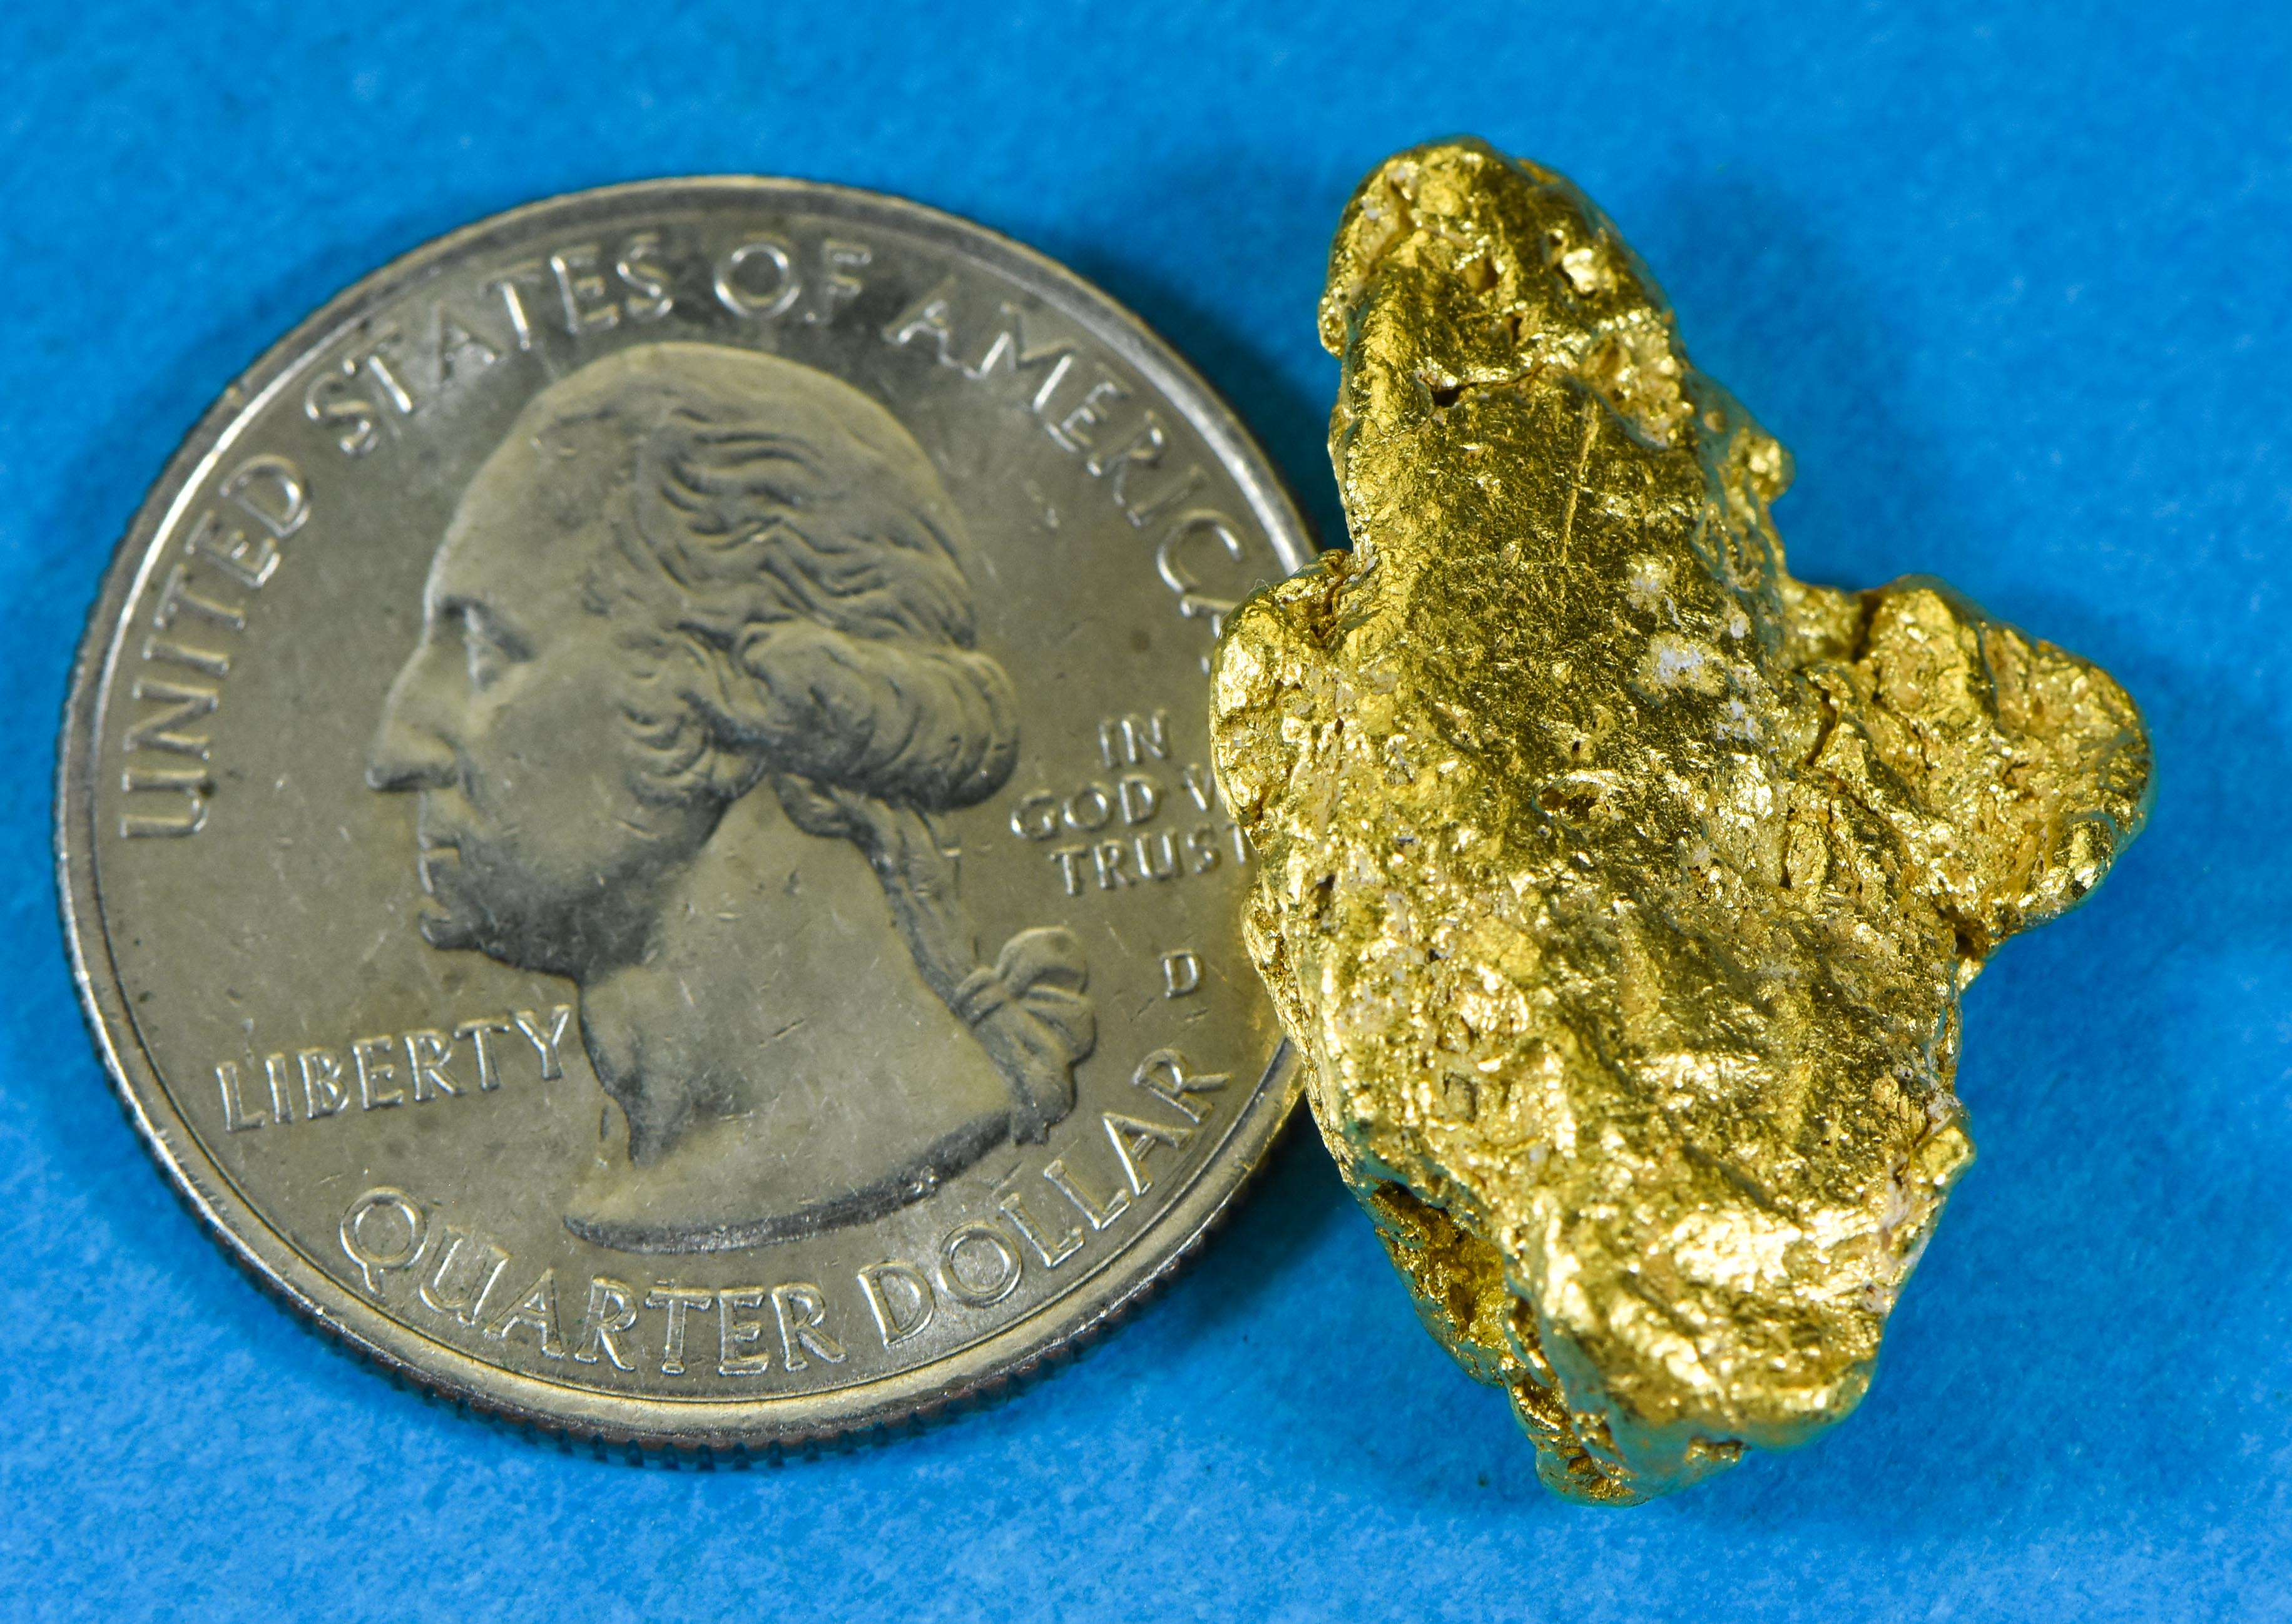 #453 Alaskan BC Natural Gold Nugget 17.67 Grams Genuine